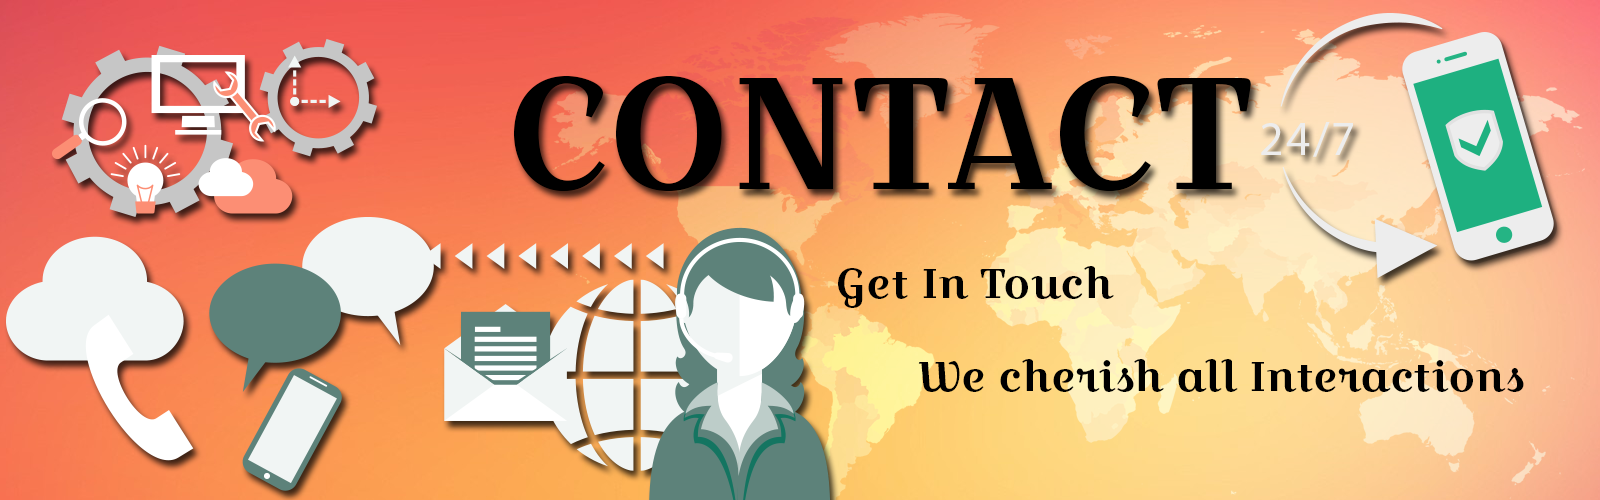 doditsolutions-Contact